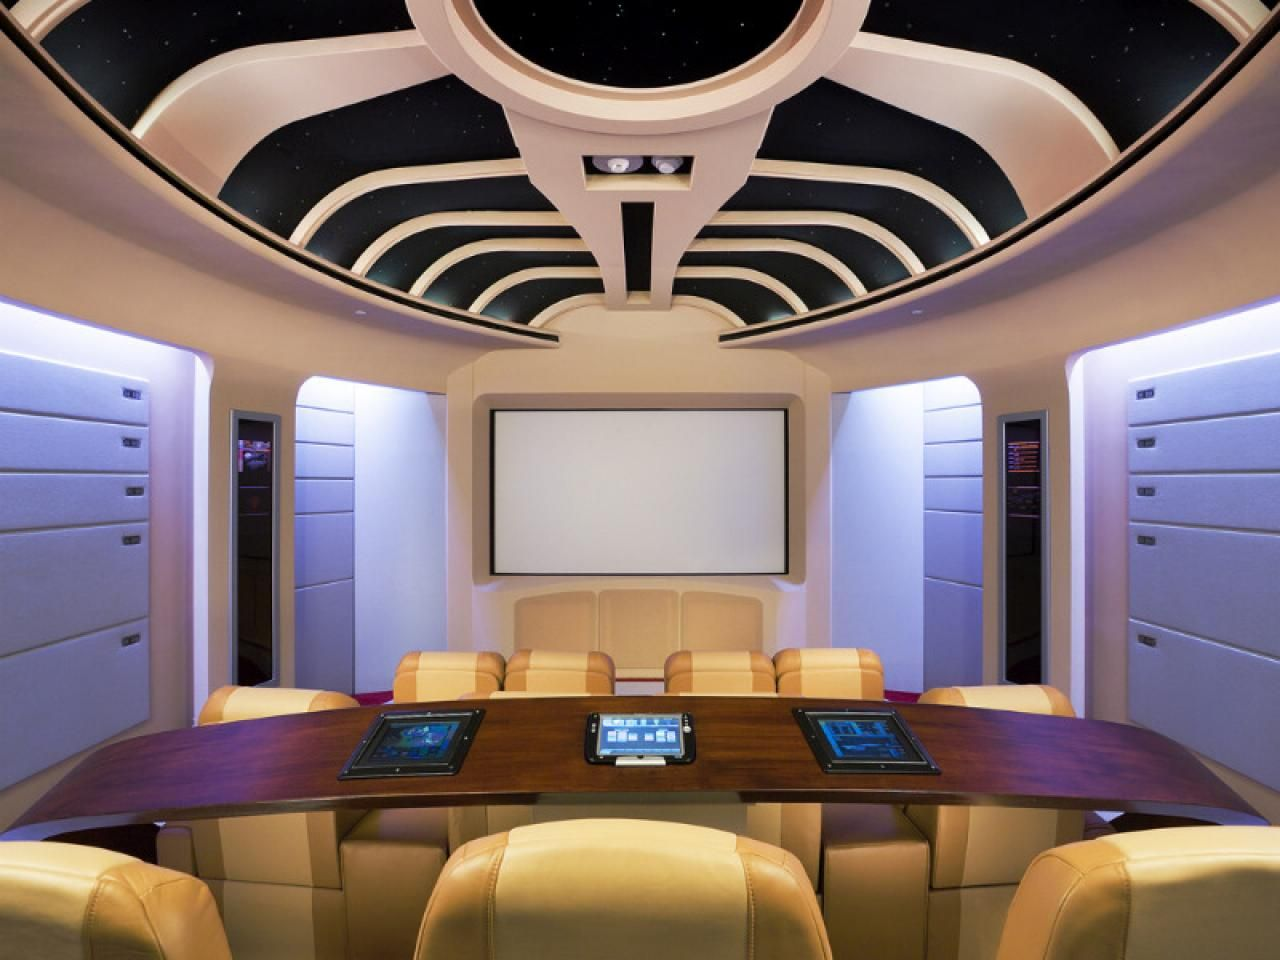 These 10 Unique Home Theater Themes Show Off The Newest And Most Elaborate  Trends In Home Theater Design.